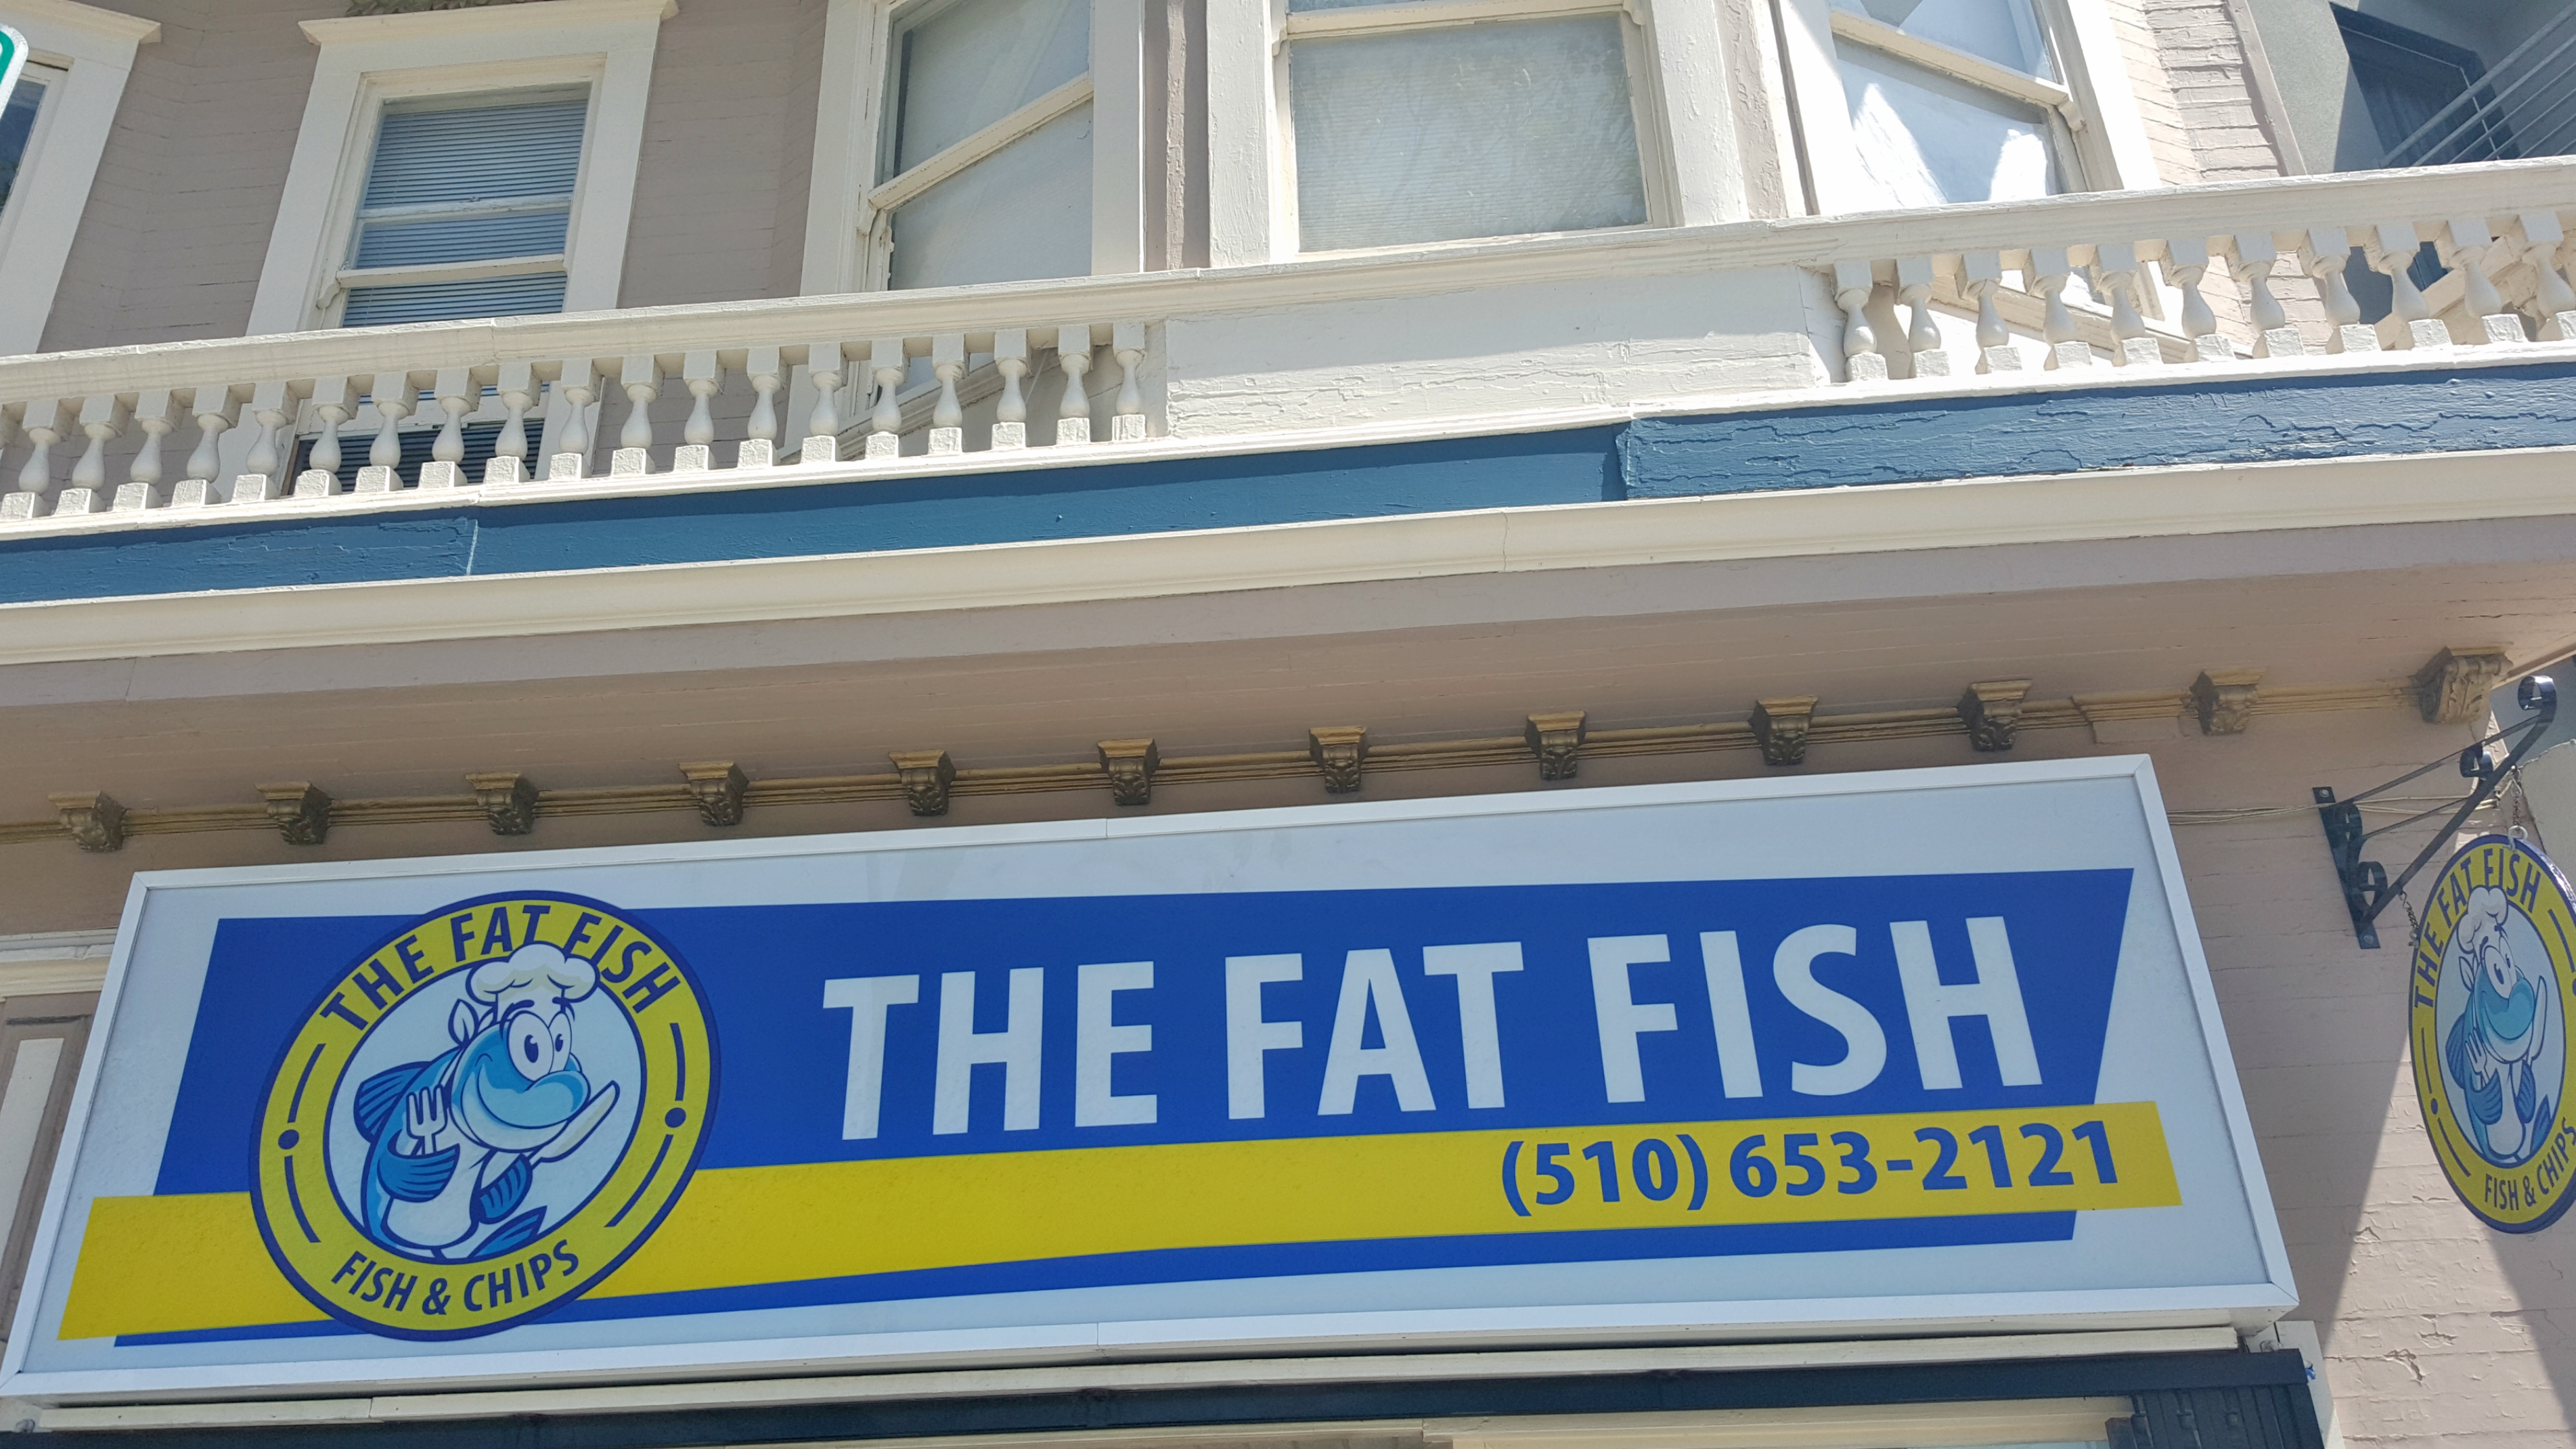 """The Fat Fish"" fried goodness in South Berkeley"